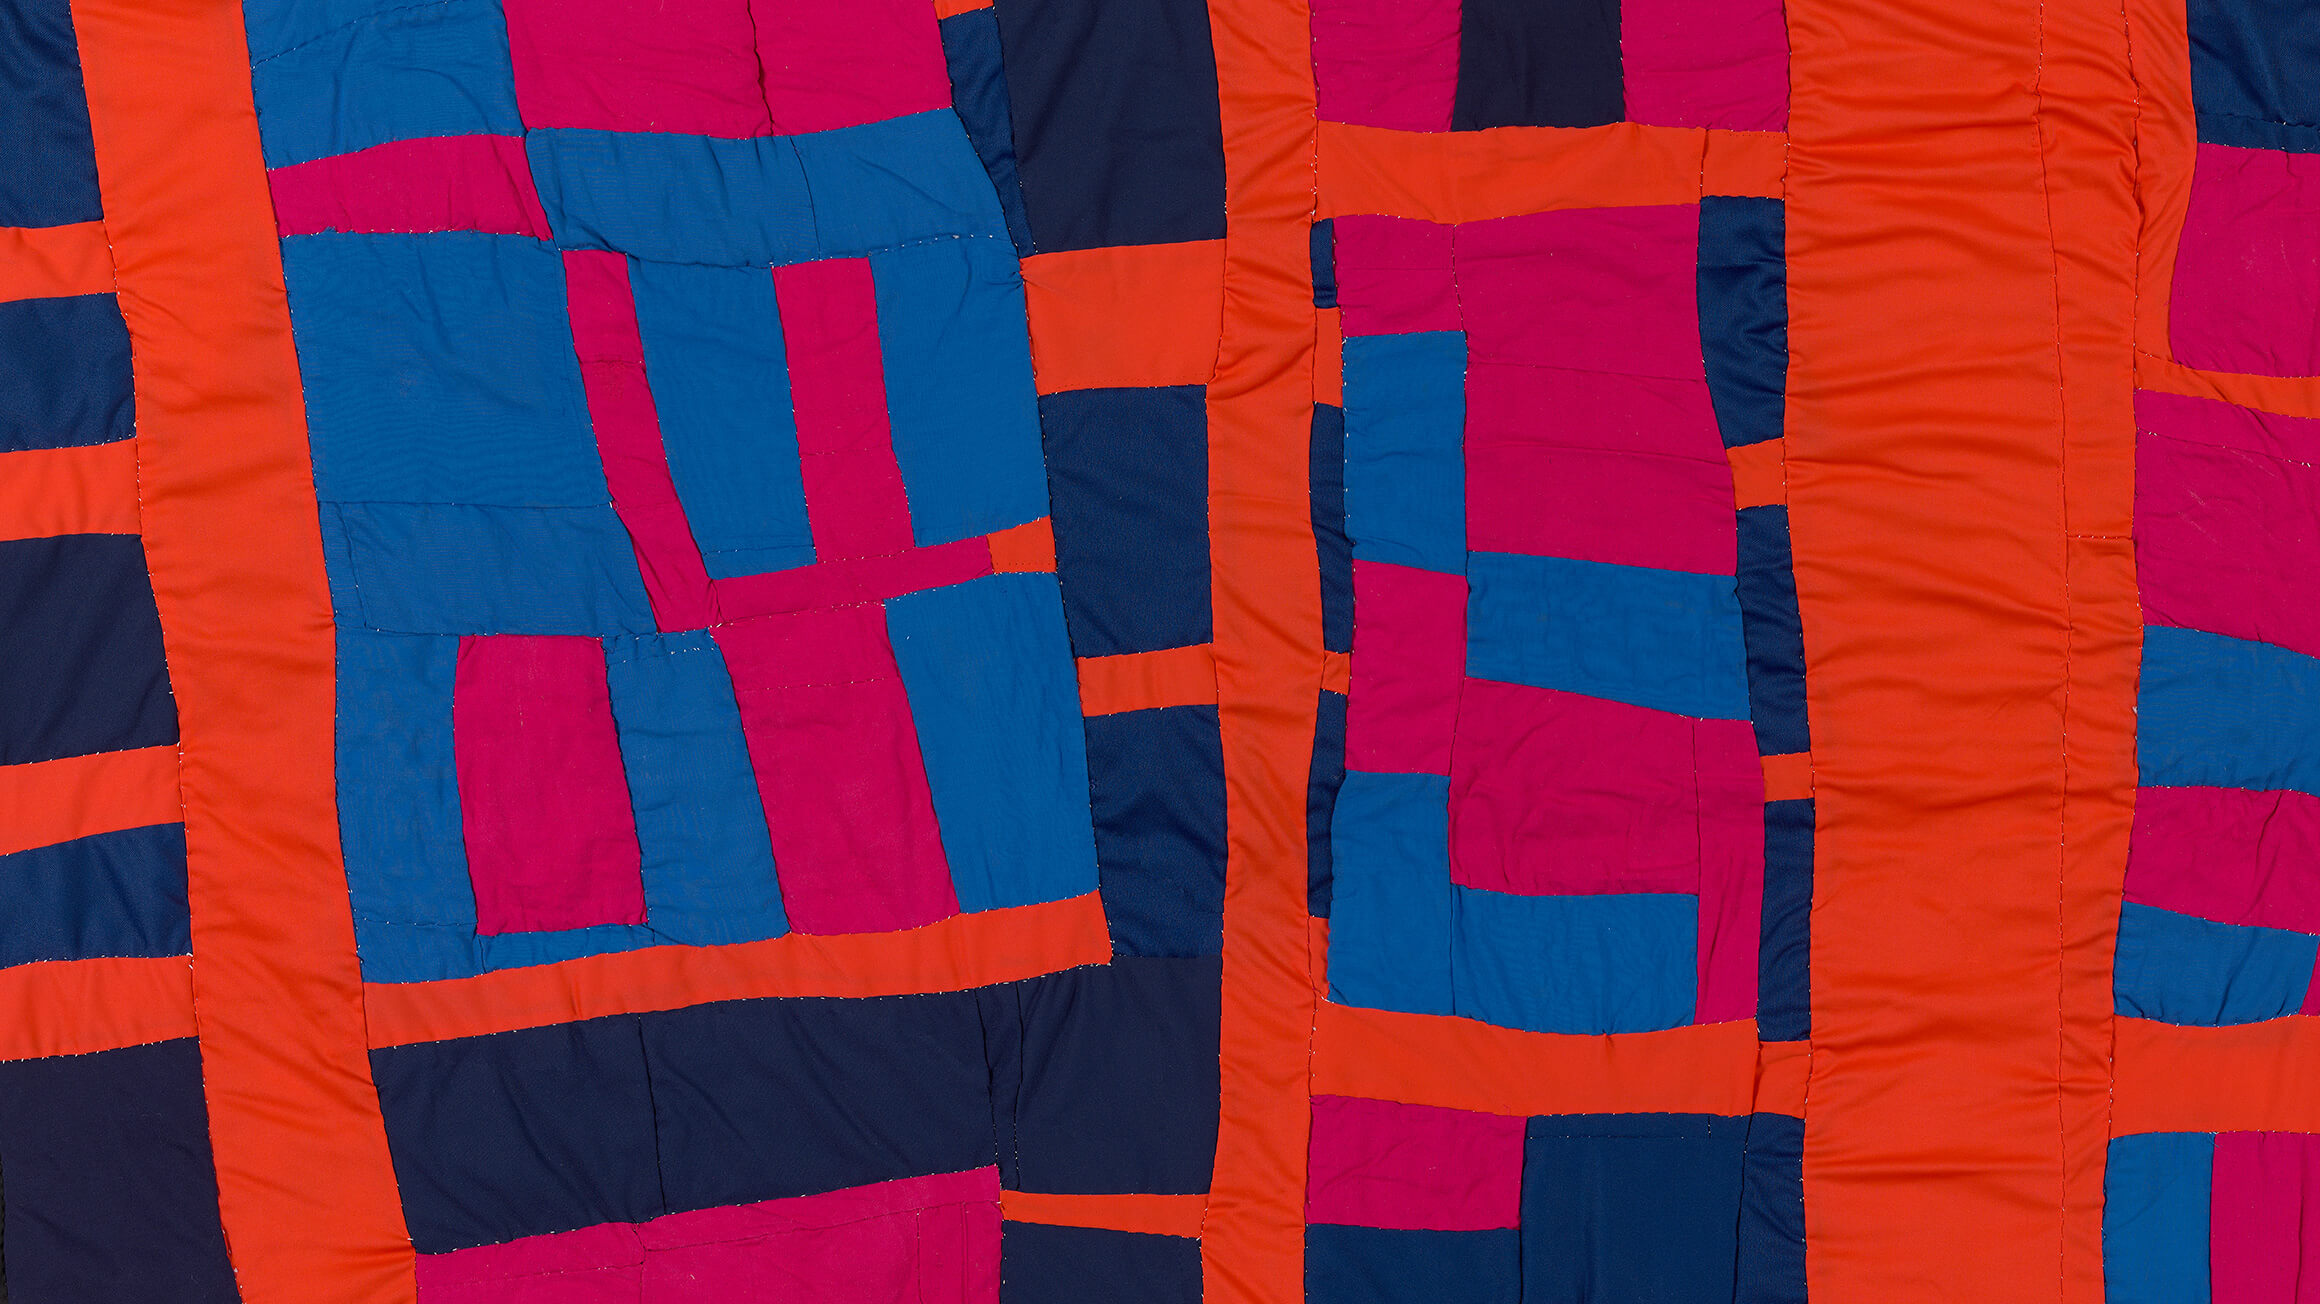 Blocks and Strips Quilt (detail), 2003, by Irene Williams (American, 1920–2015), 2017-229-11. © Estate of Irene Williams/Artists Rights Society (ARS), New York